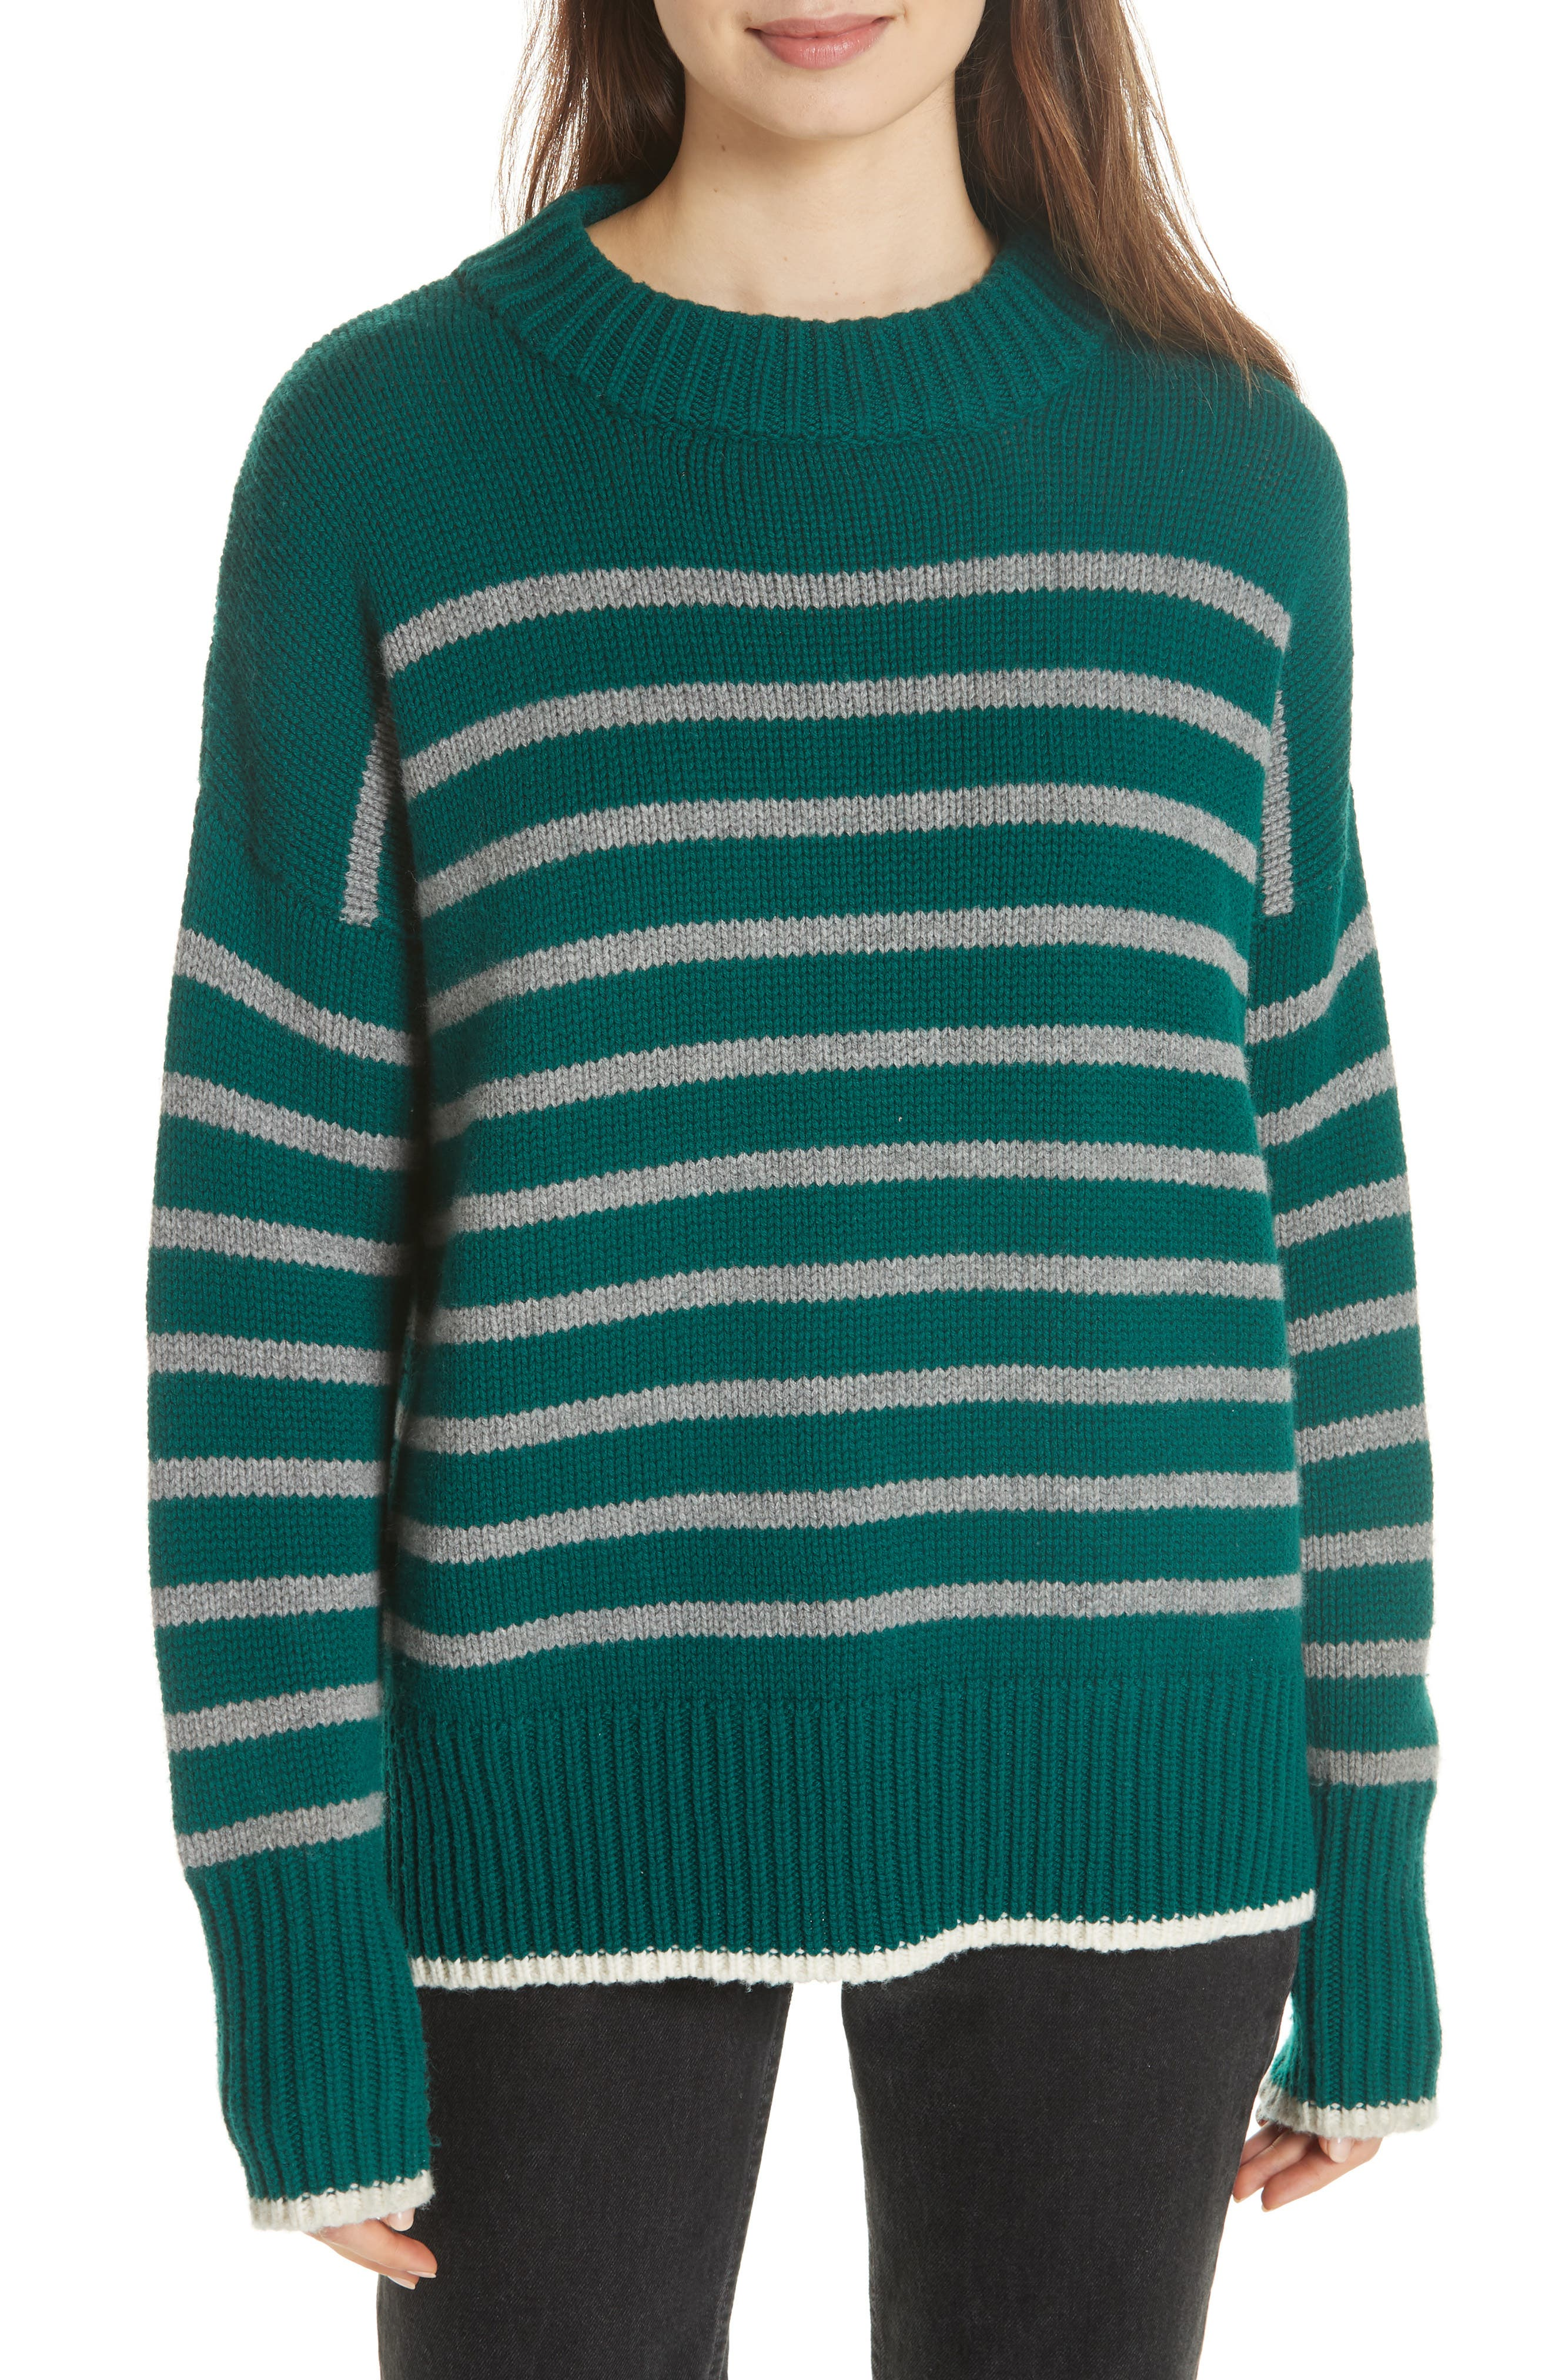 Marin Wool & Cashmere Sweater,                         Main,                         color, FOREST GREEN/ GREY MARLE